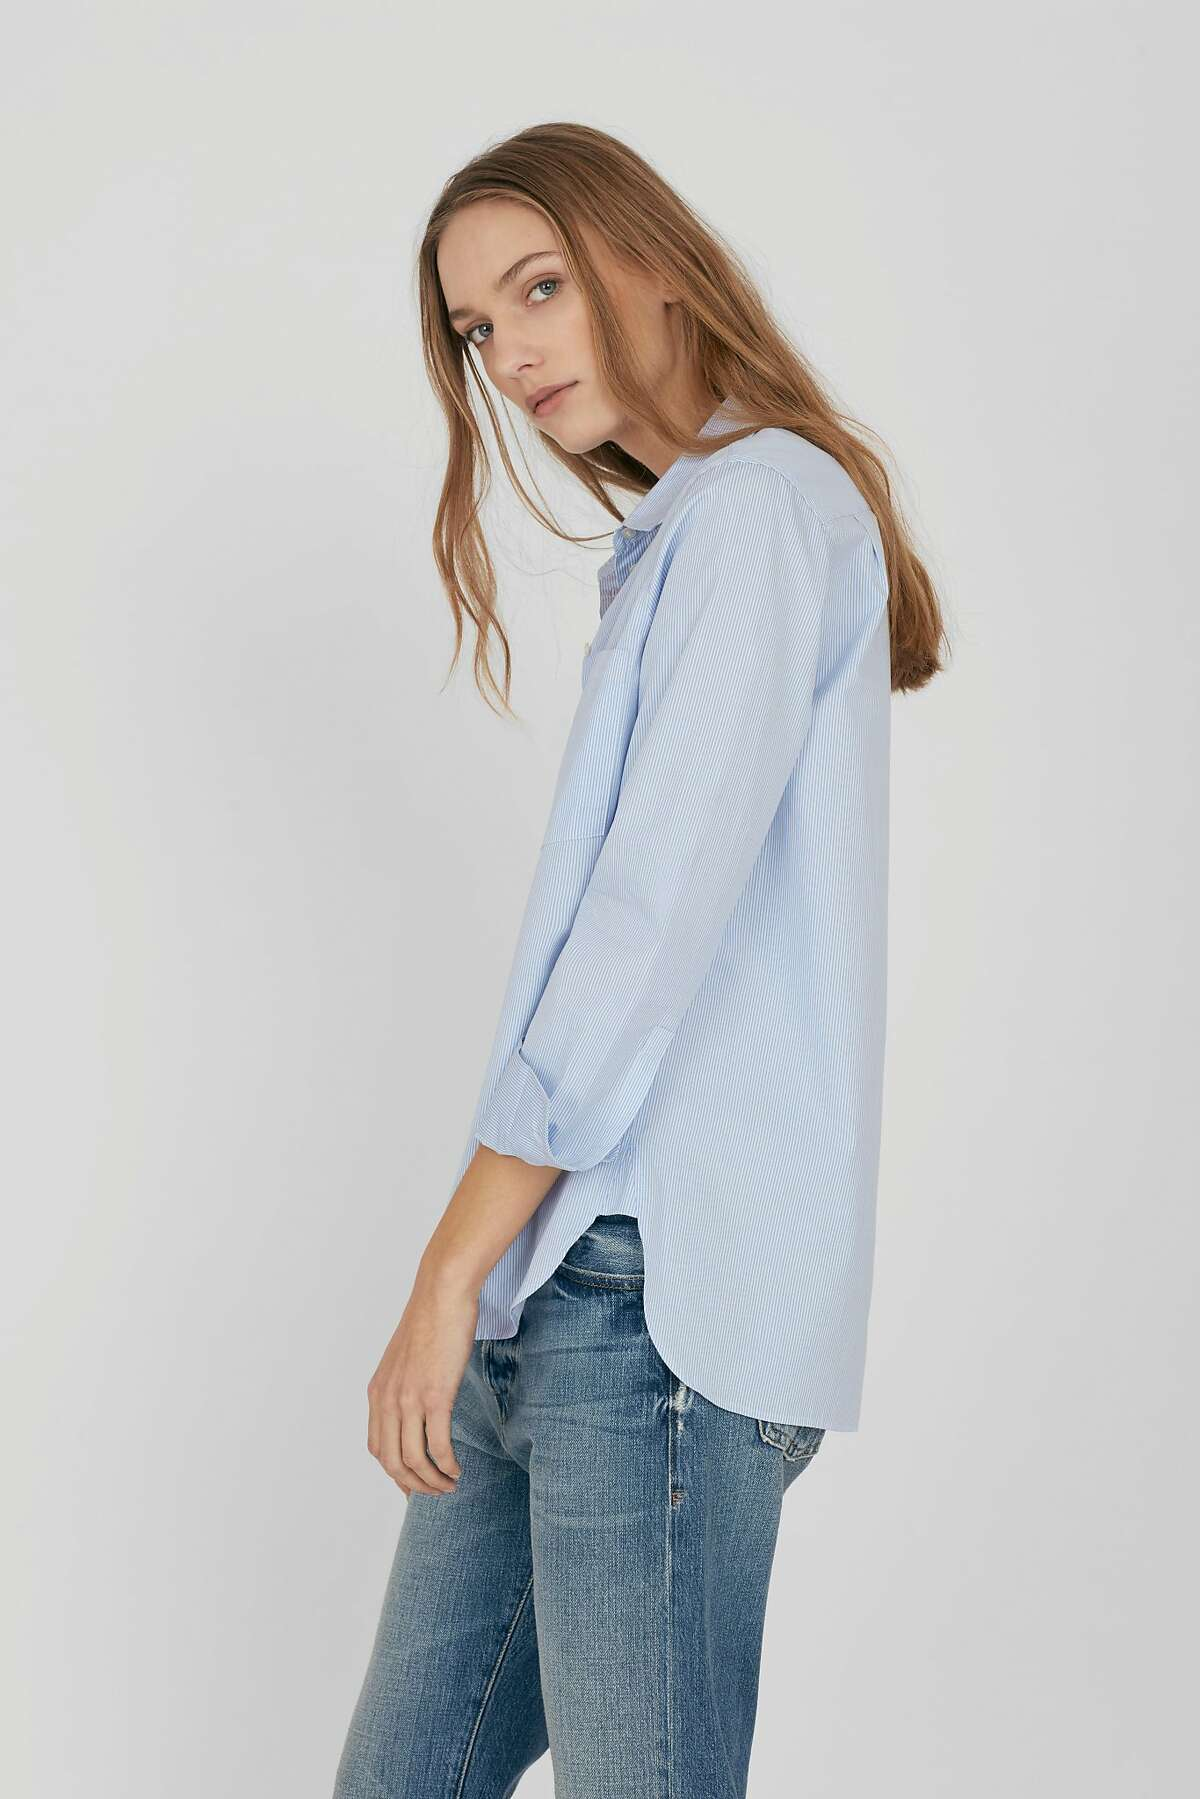 Cuyana's poplin Boyfriend shirt ($145) also comes in a blue-and-white stripe and a solid white.